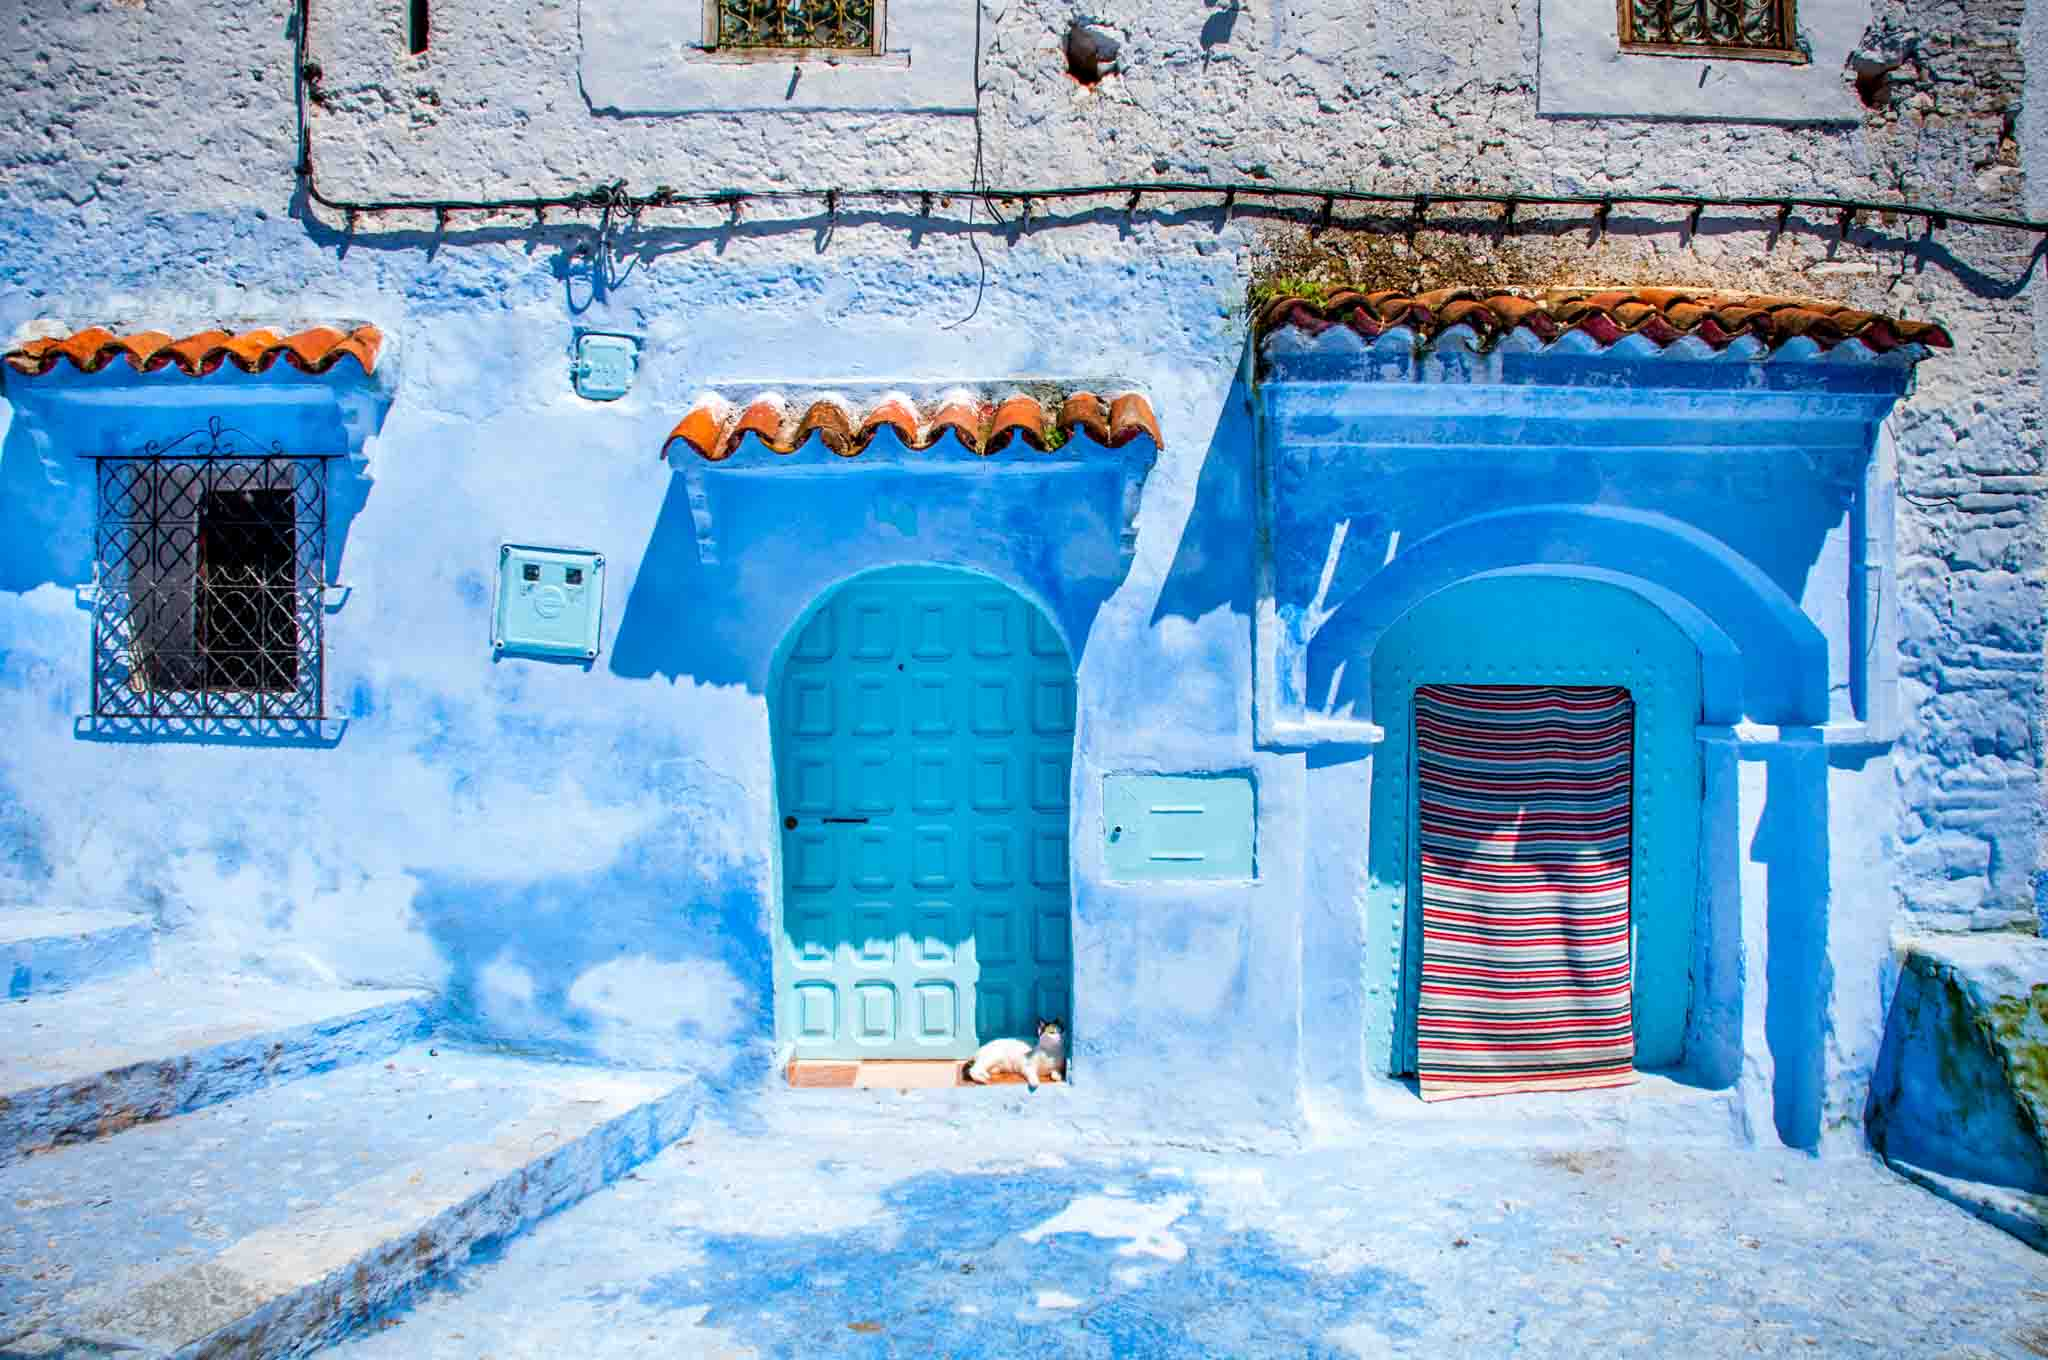 Blue doors in Morocco's blue city